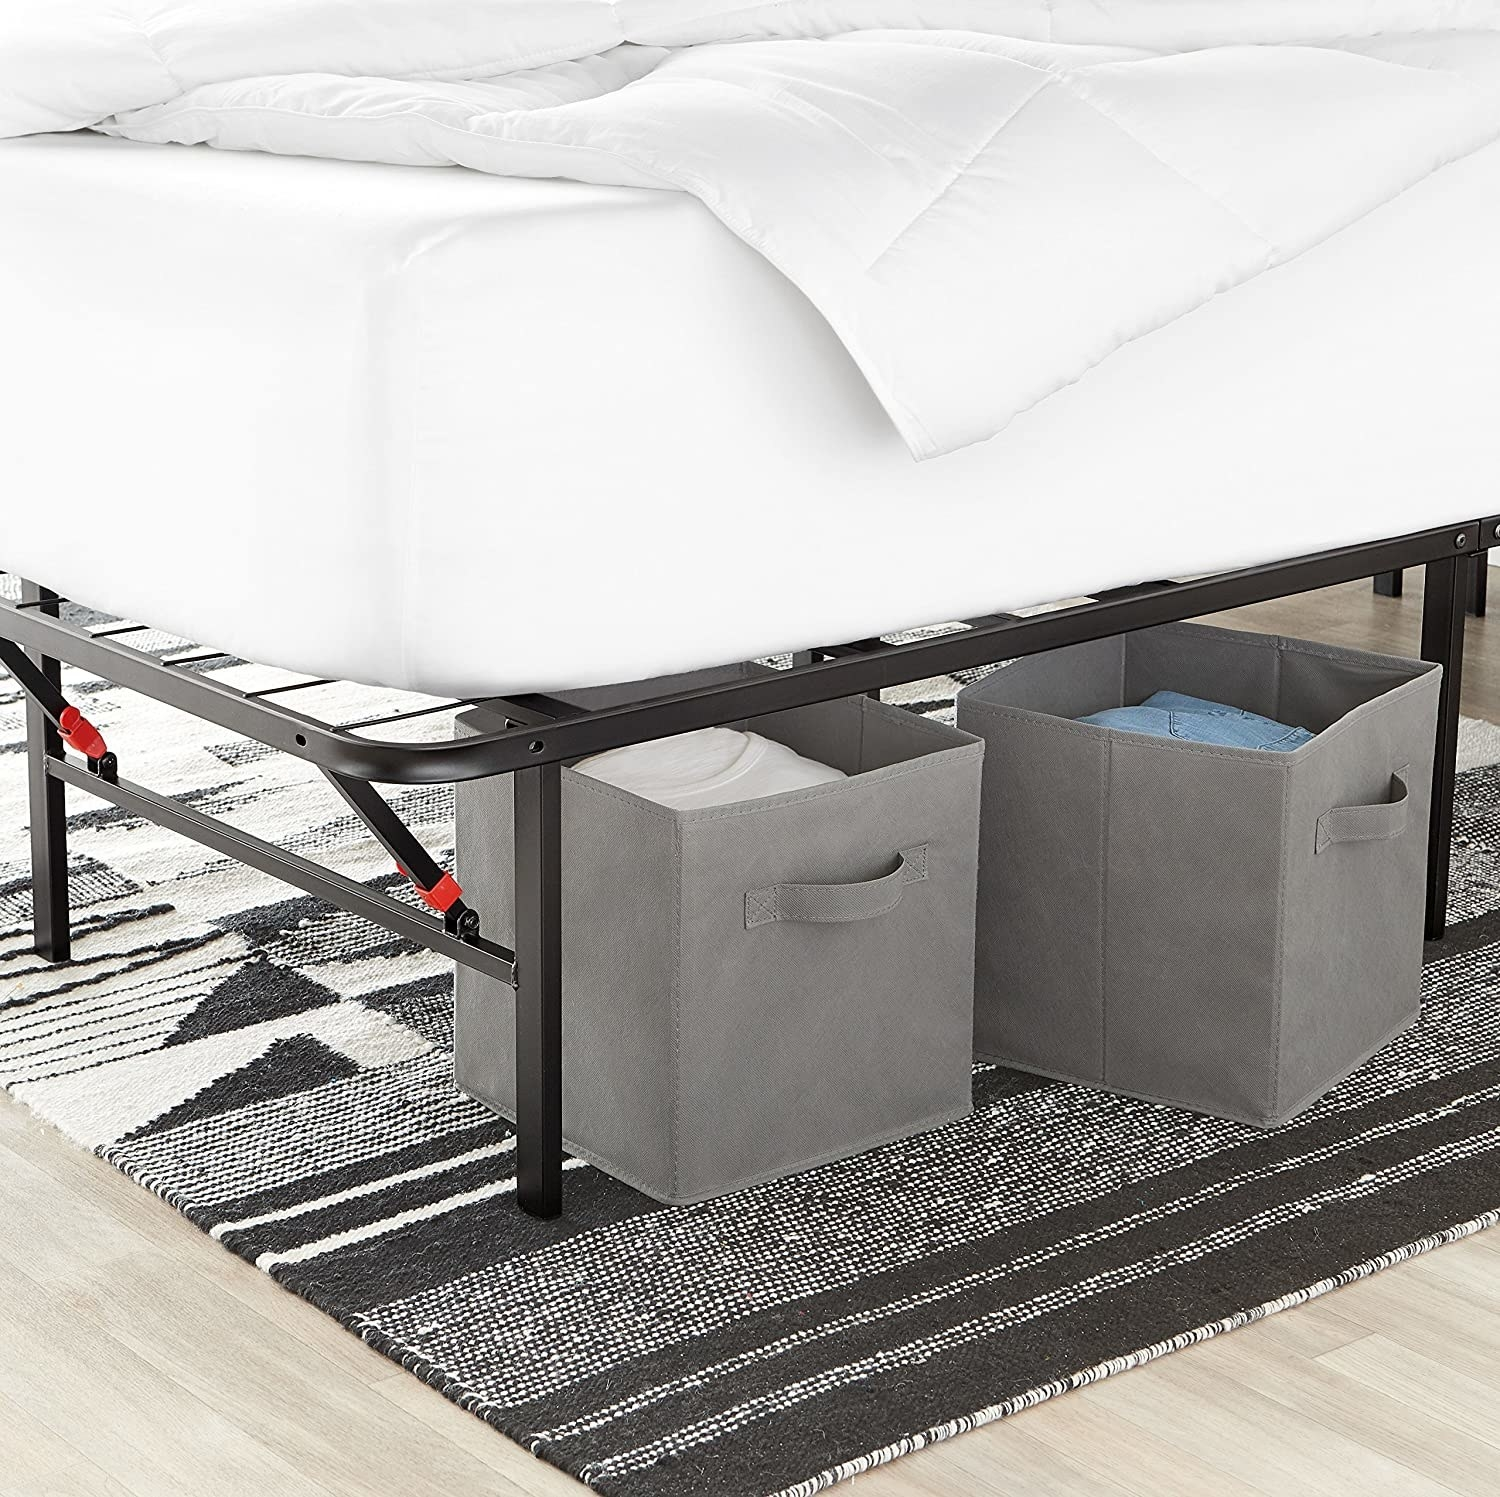 Two gray storage cubes placed underneath bed